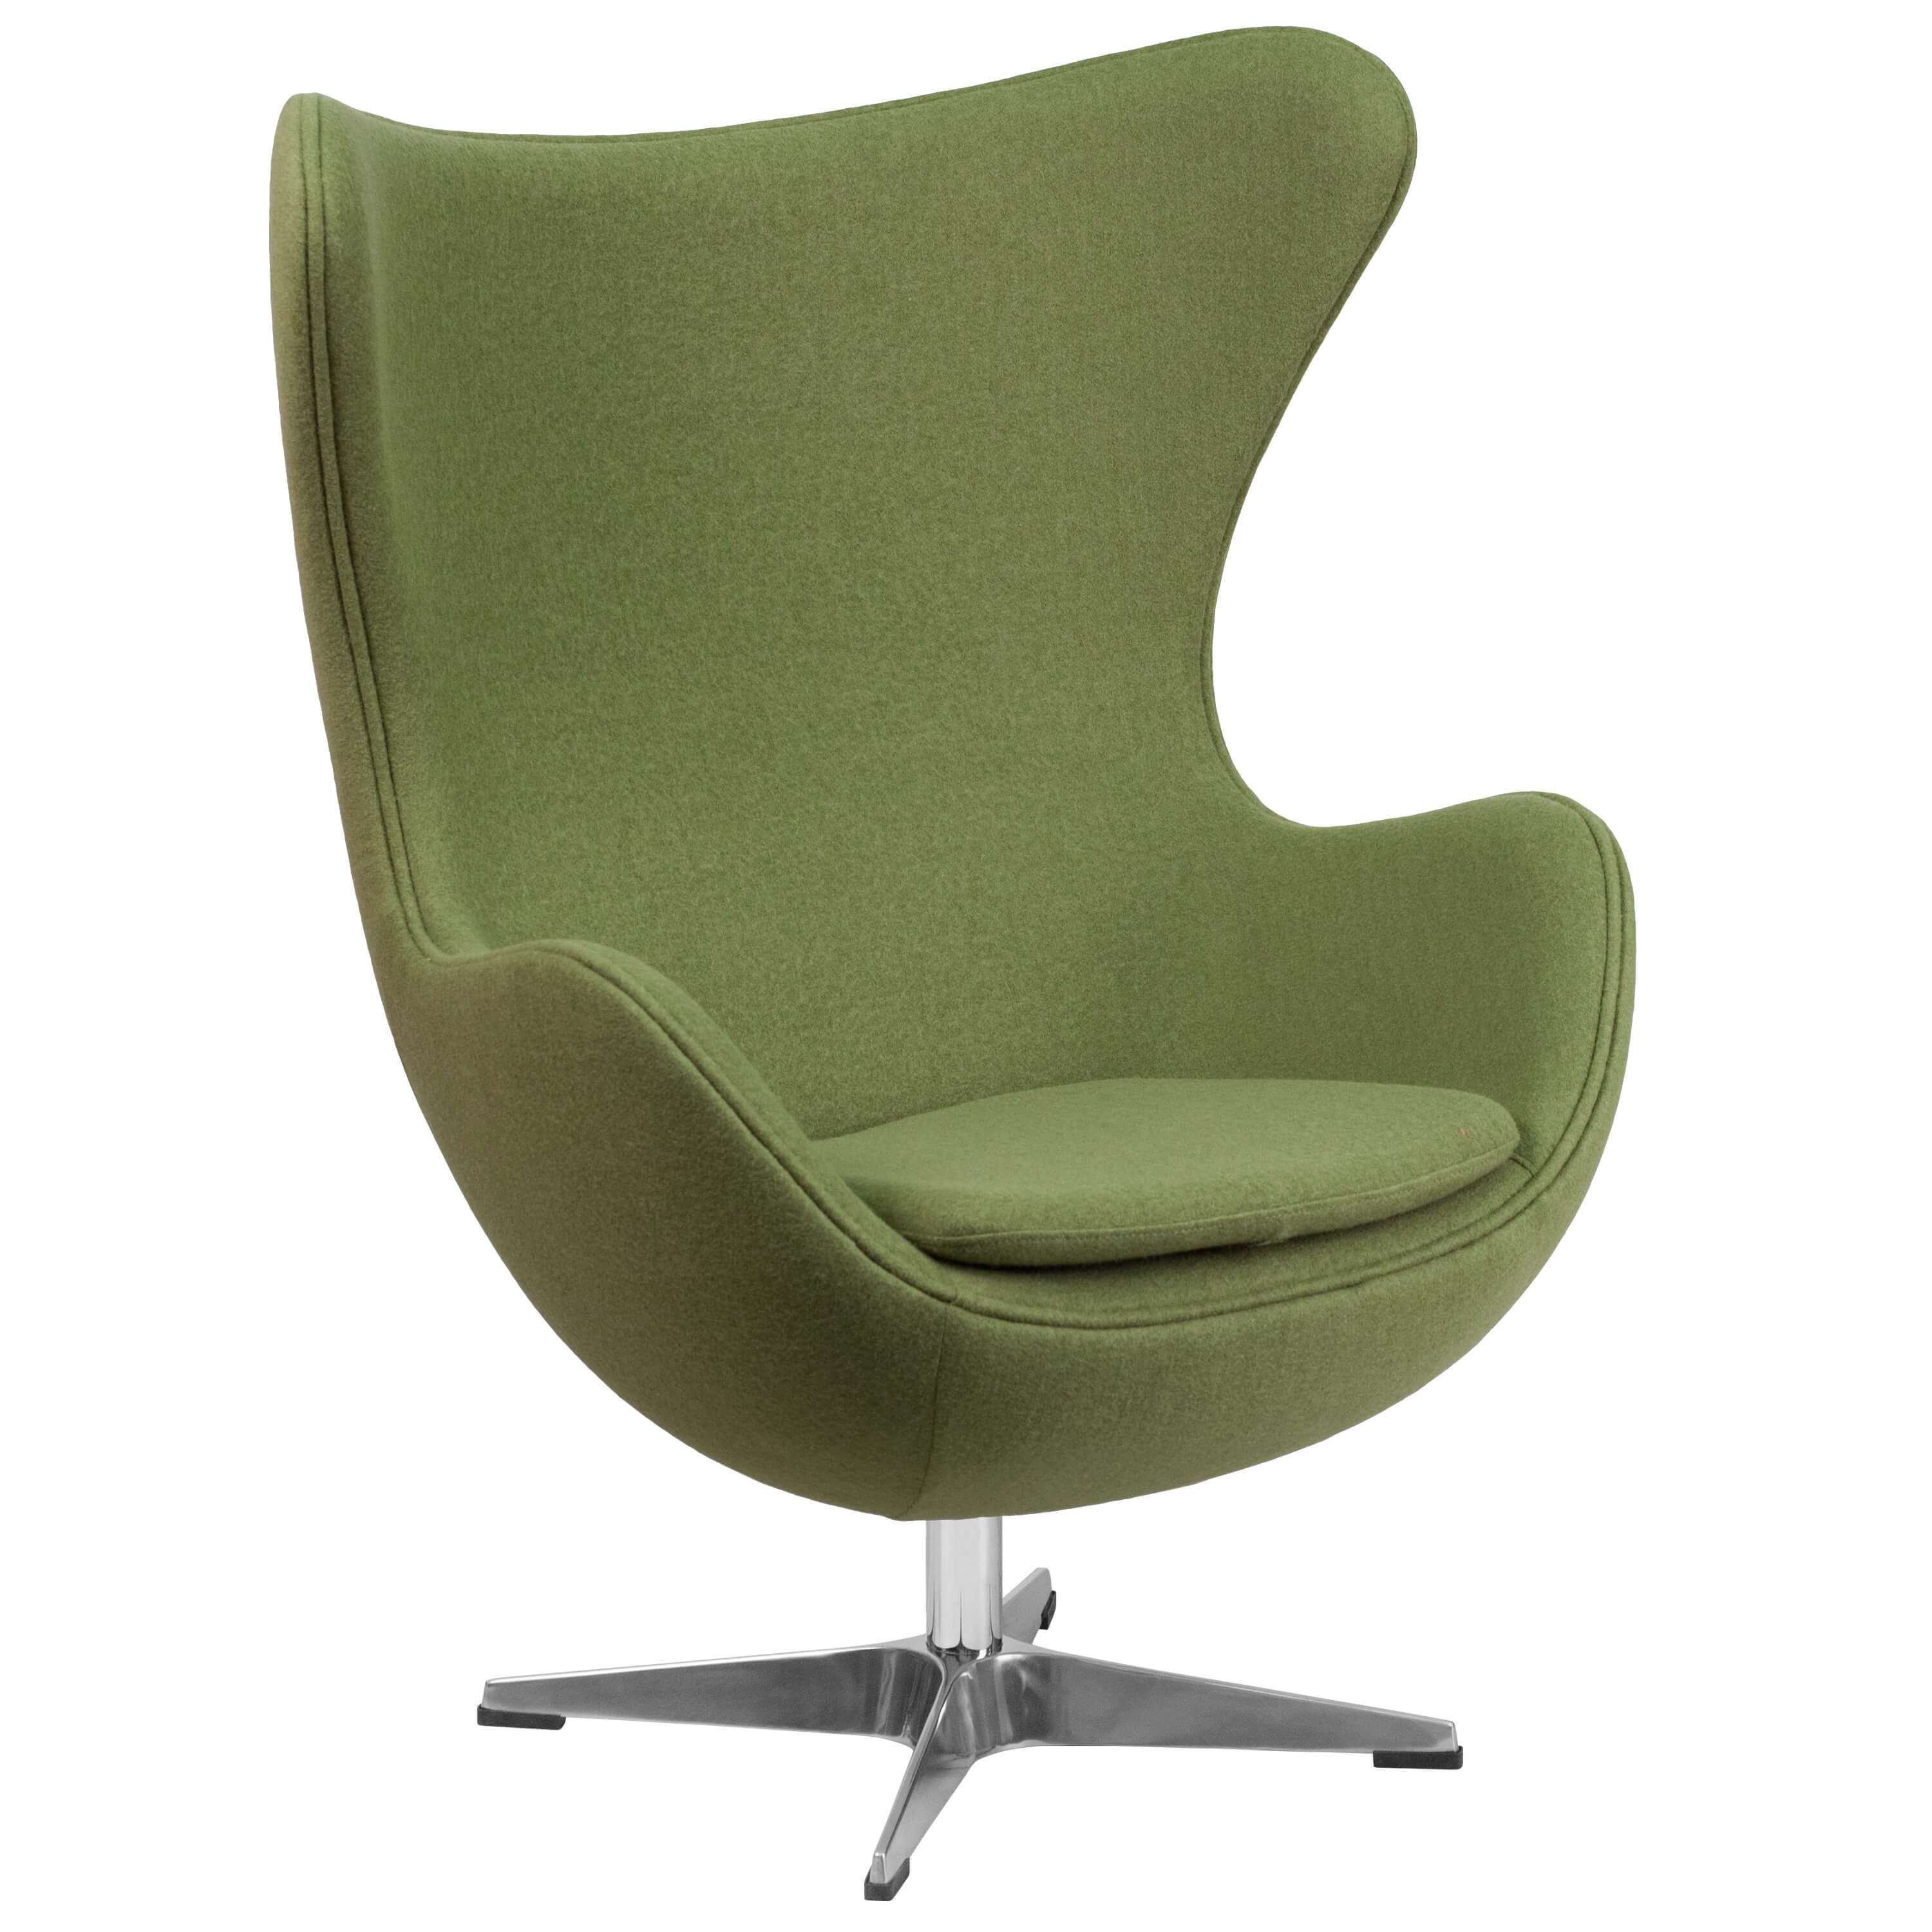 Office lounge chairs CUB ZB 19 GG ALF